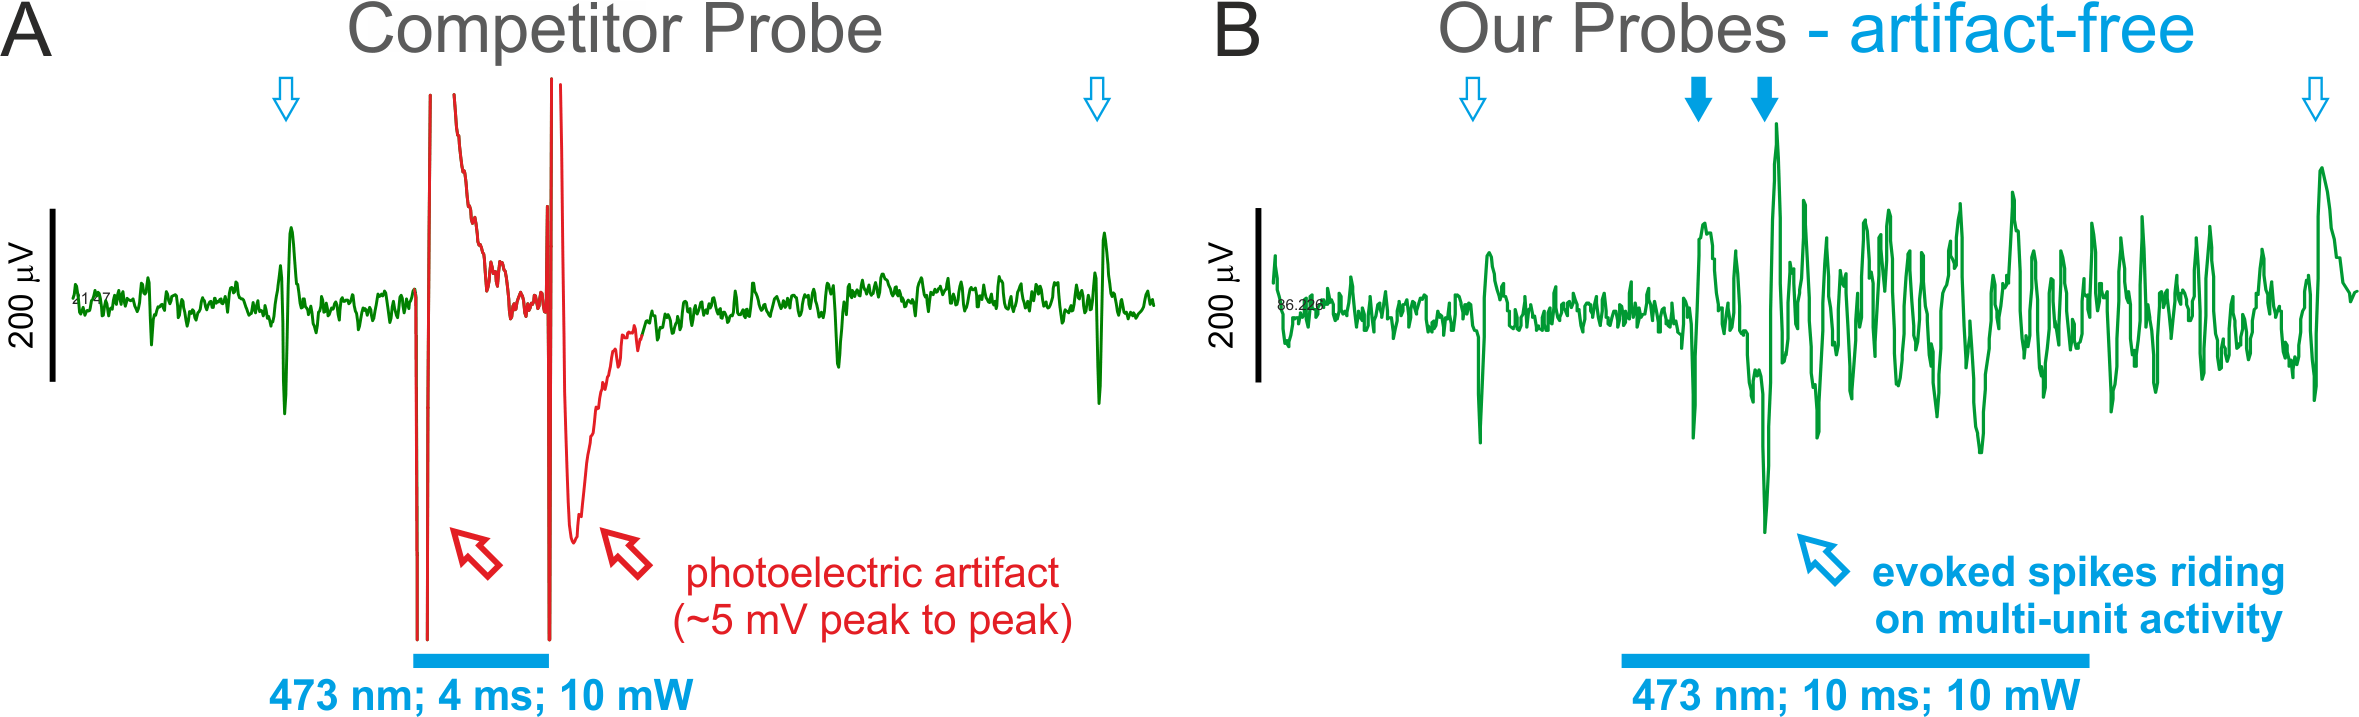 Optogenetic photoelectric artifact on Neuronexus probe versus Cambridge Neurotech silicon neural probe